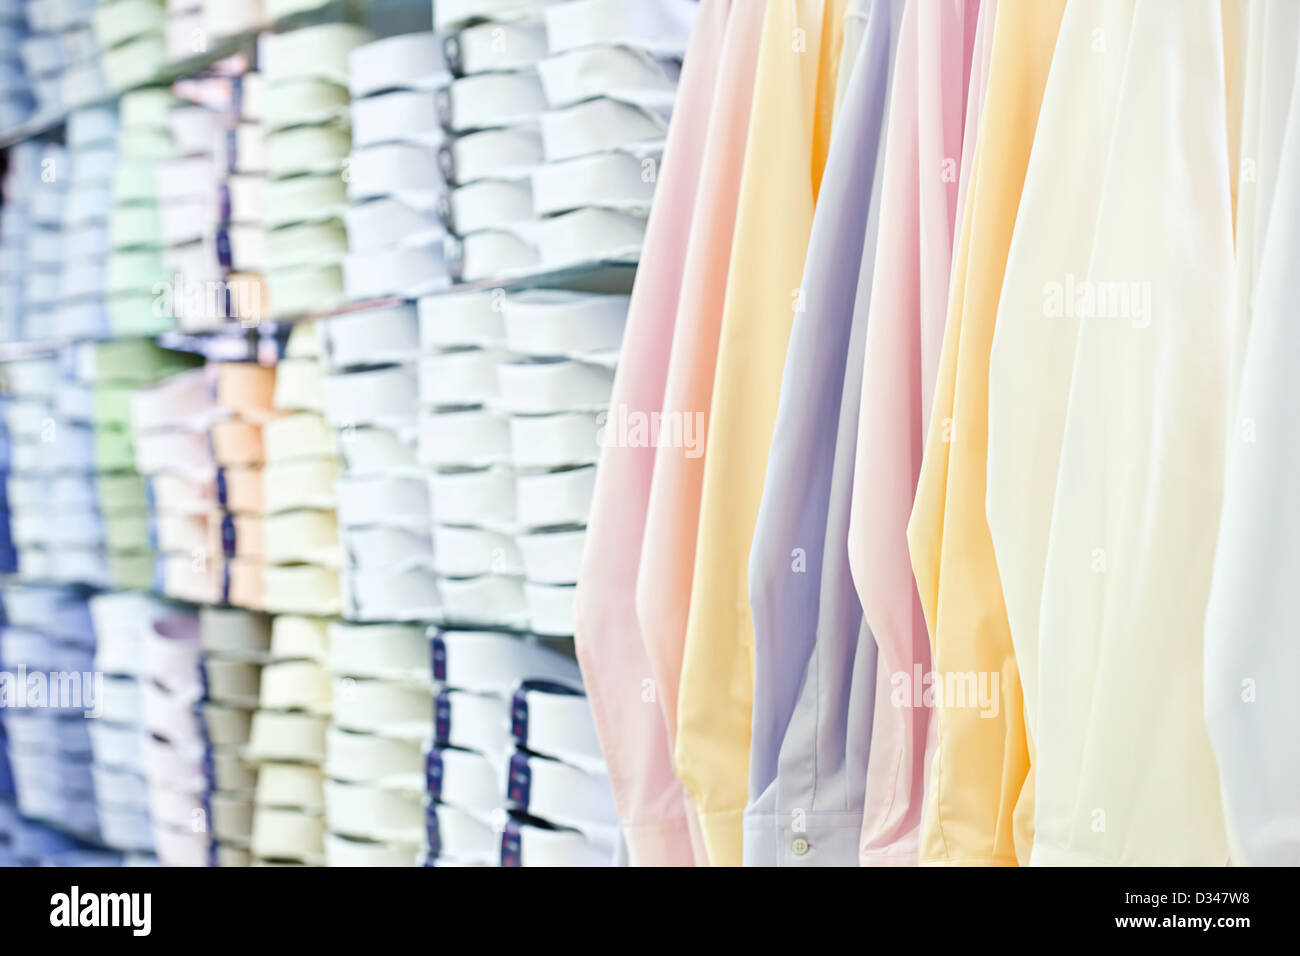 mens wear store, business clothing - shirts - Stock Image